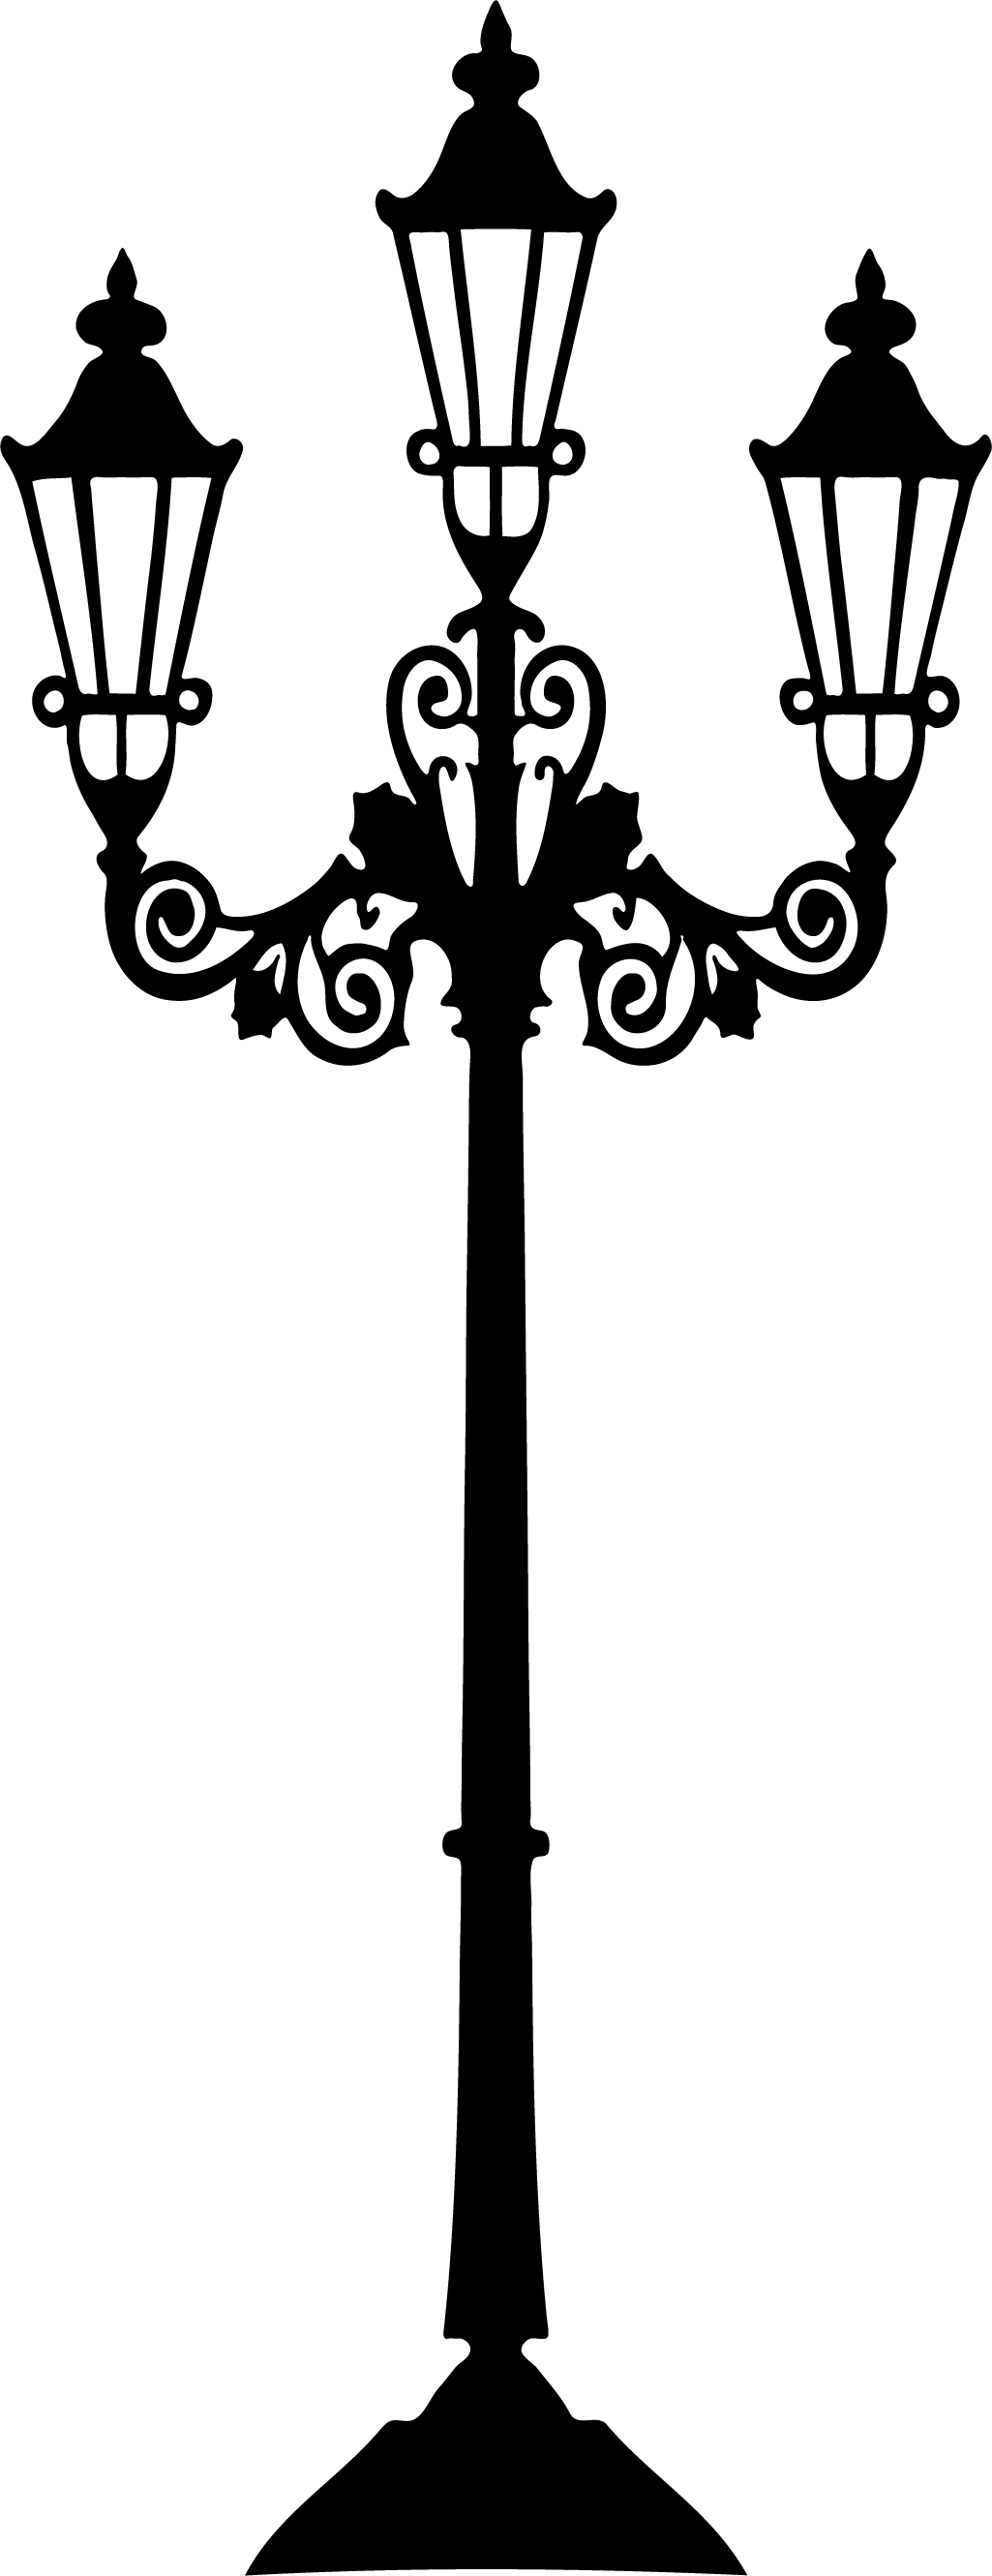 Lamp Pole Clipart